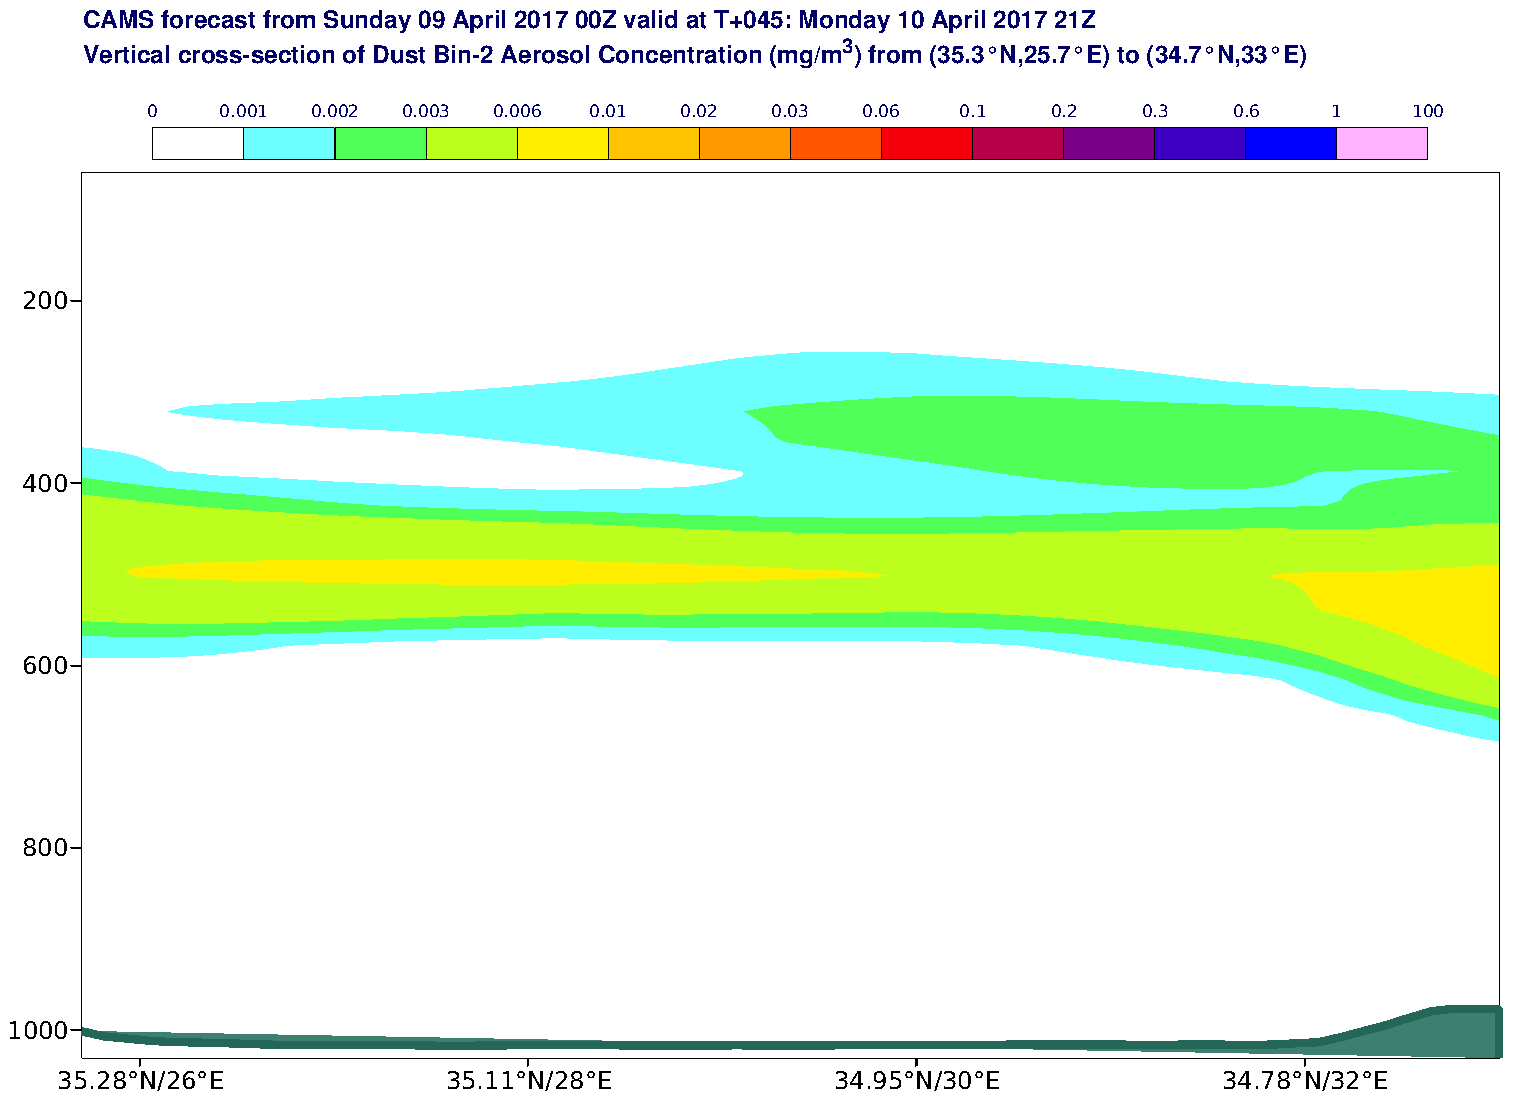 Vertical cross-section of Dust Bin-2 Aerosol Concentration (mg/m3) valid at T45 - 2017-04-10 21:00